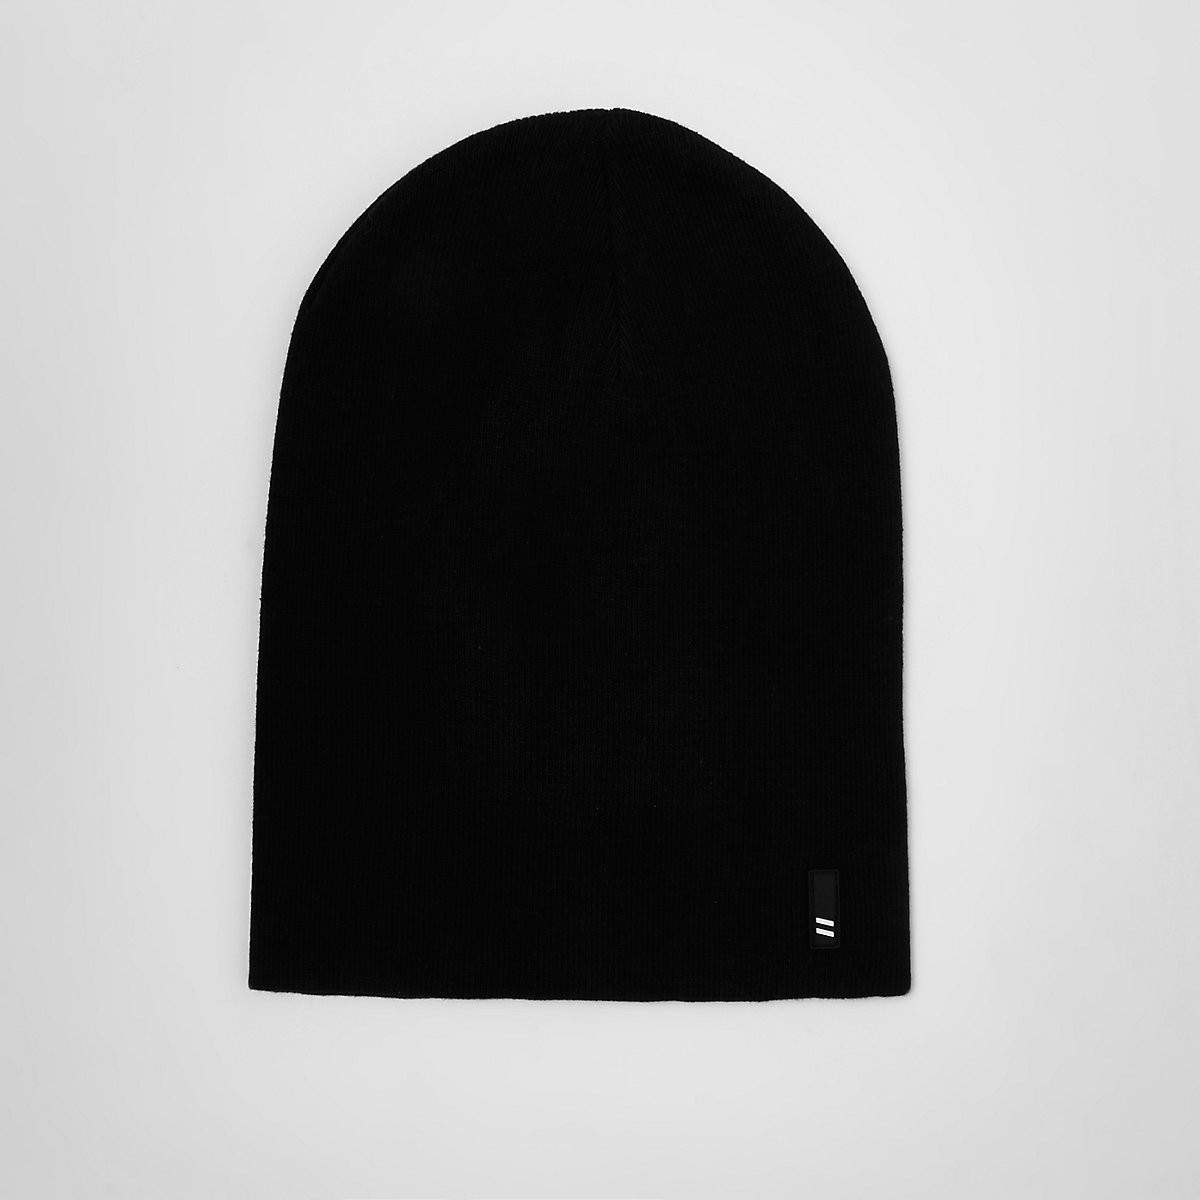 Black slouchy beanie hat - Hats   Caps - Accessories - men 8f6af305655